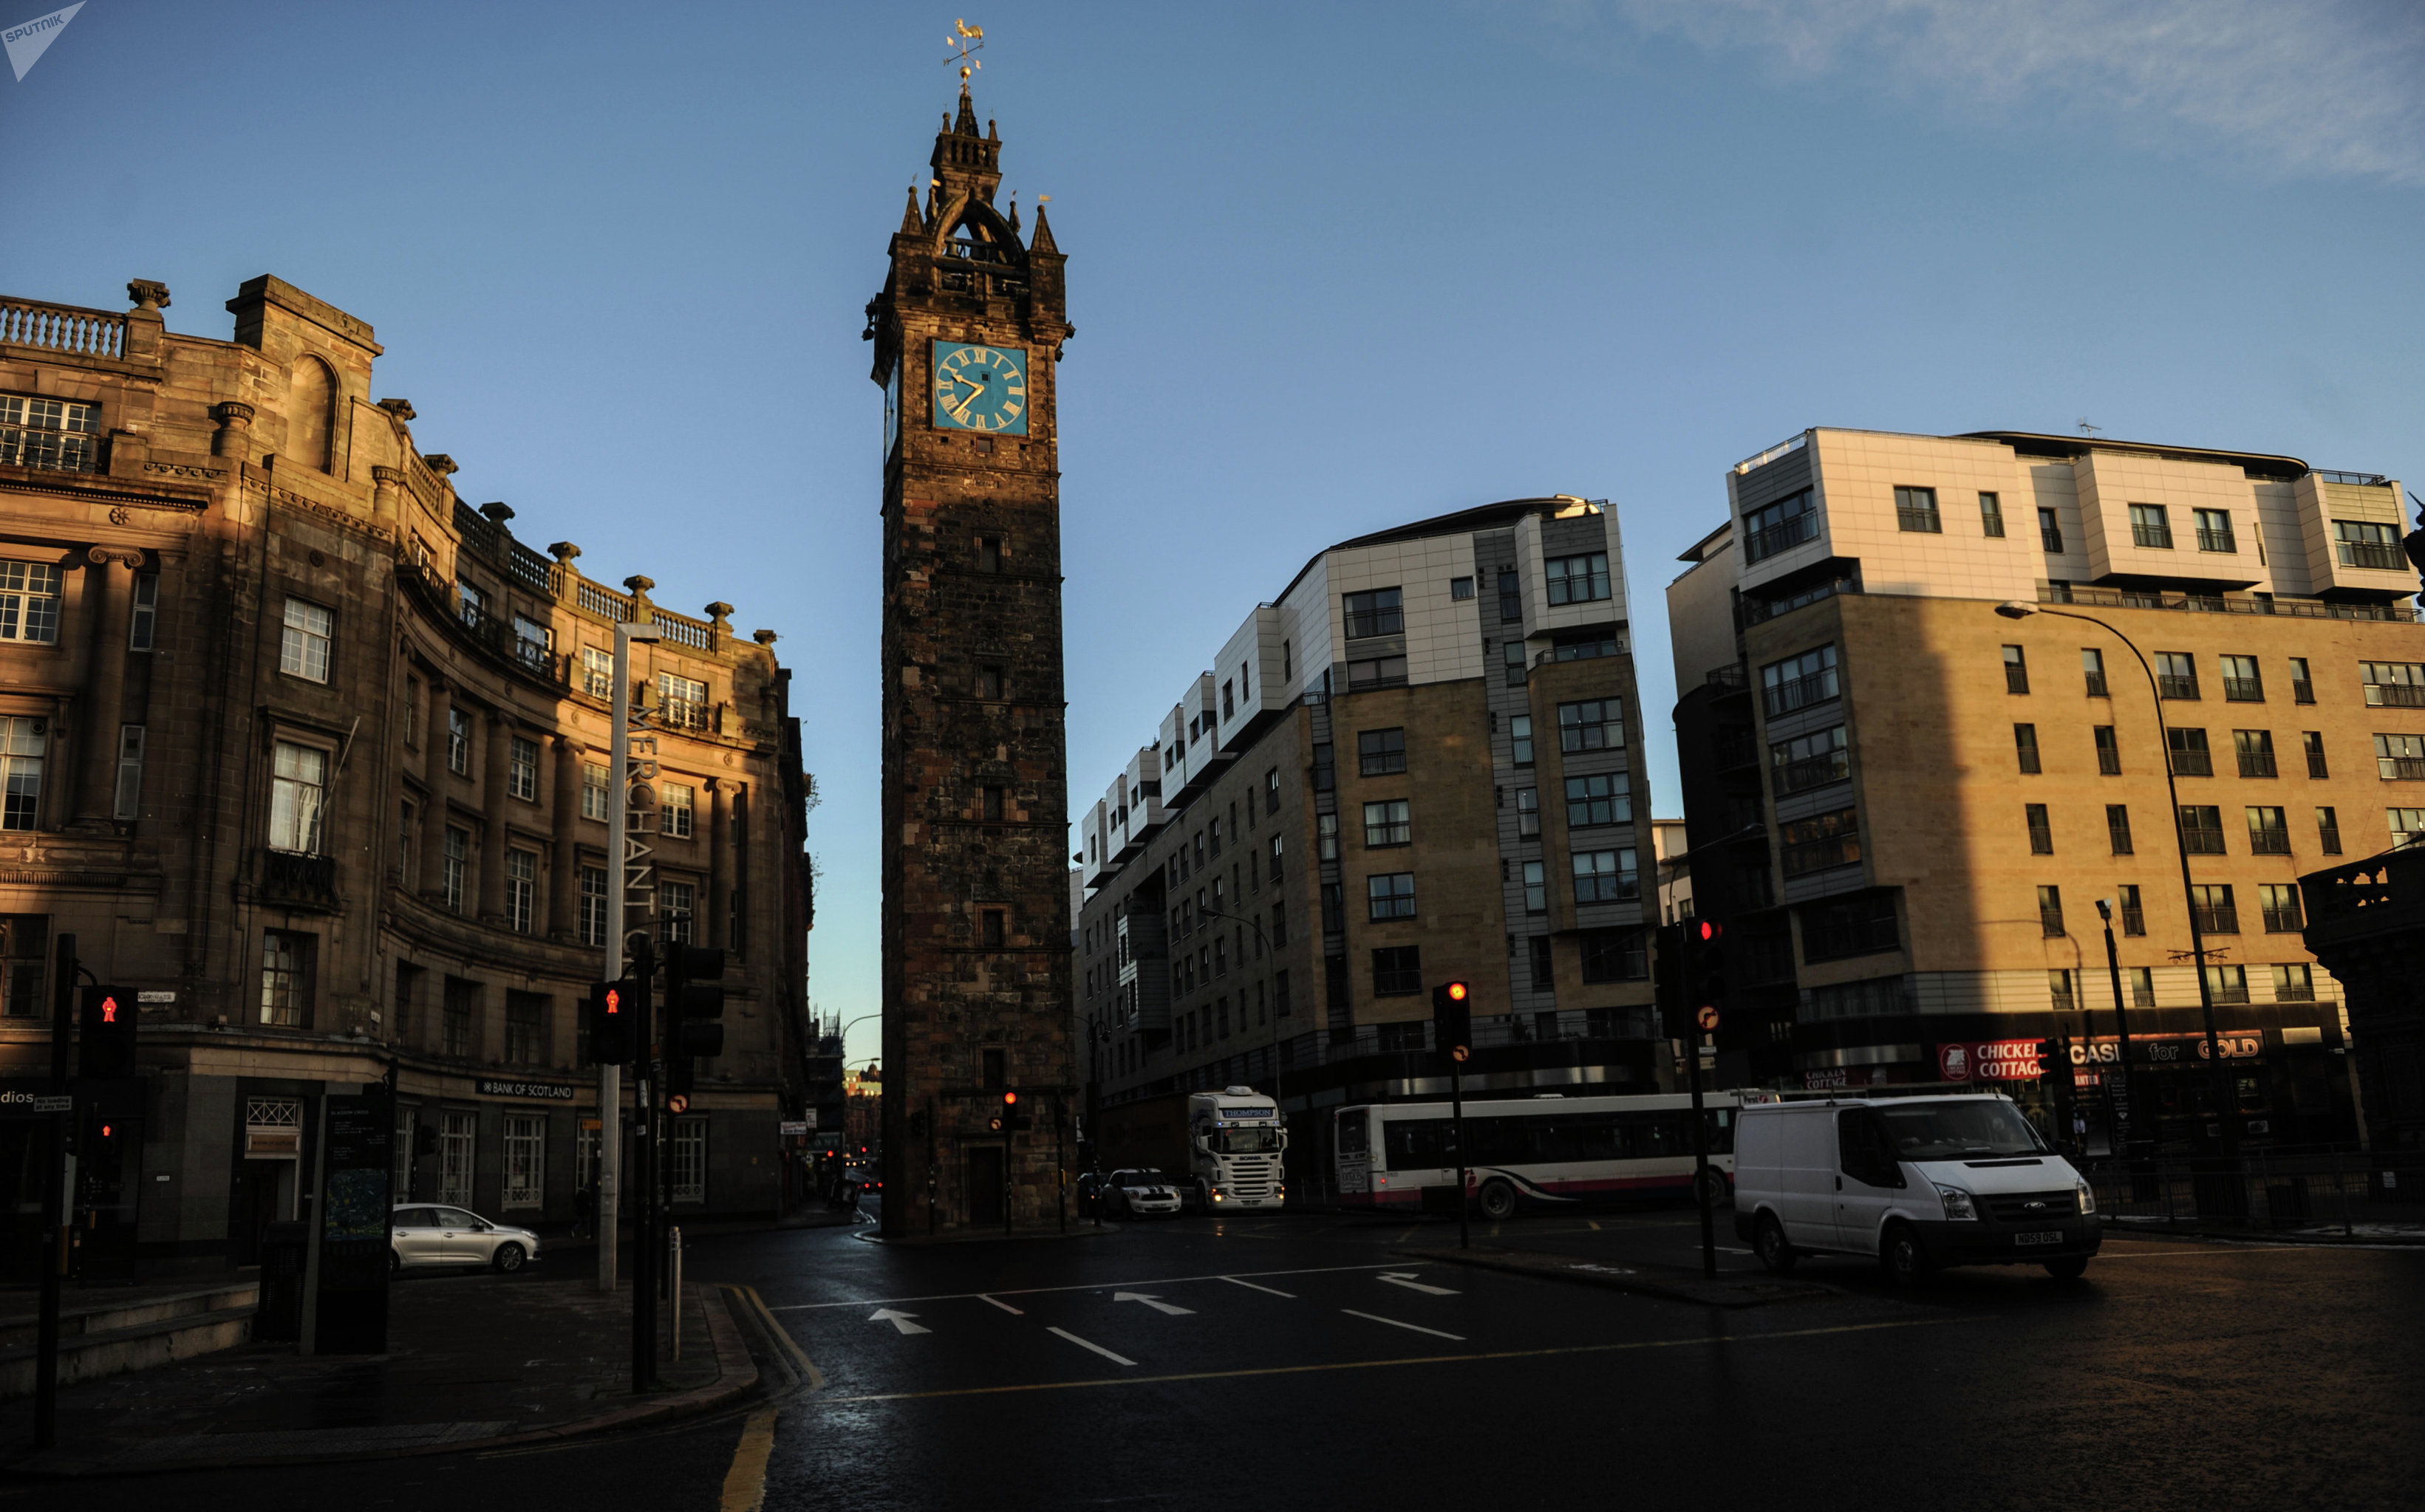 Tolbooth Clock Tower in Glasgow